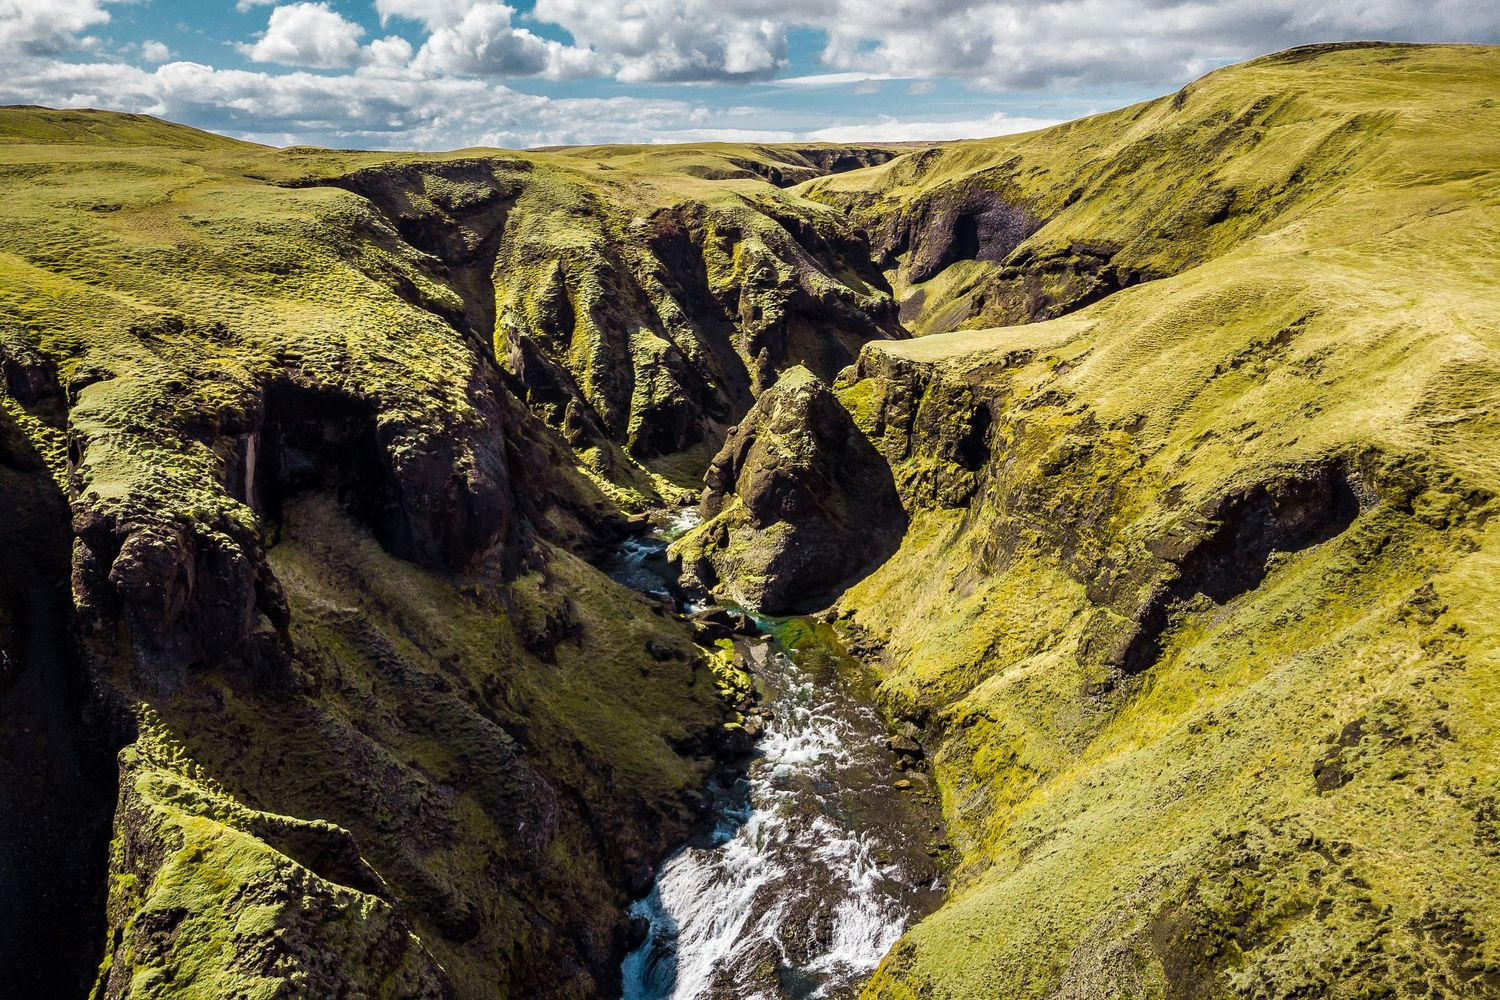 Valley in Iceland landscape during adventurous full day elopement